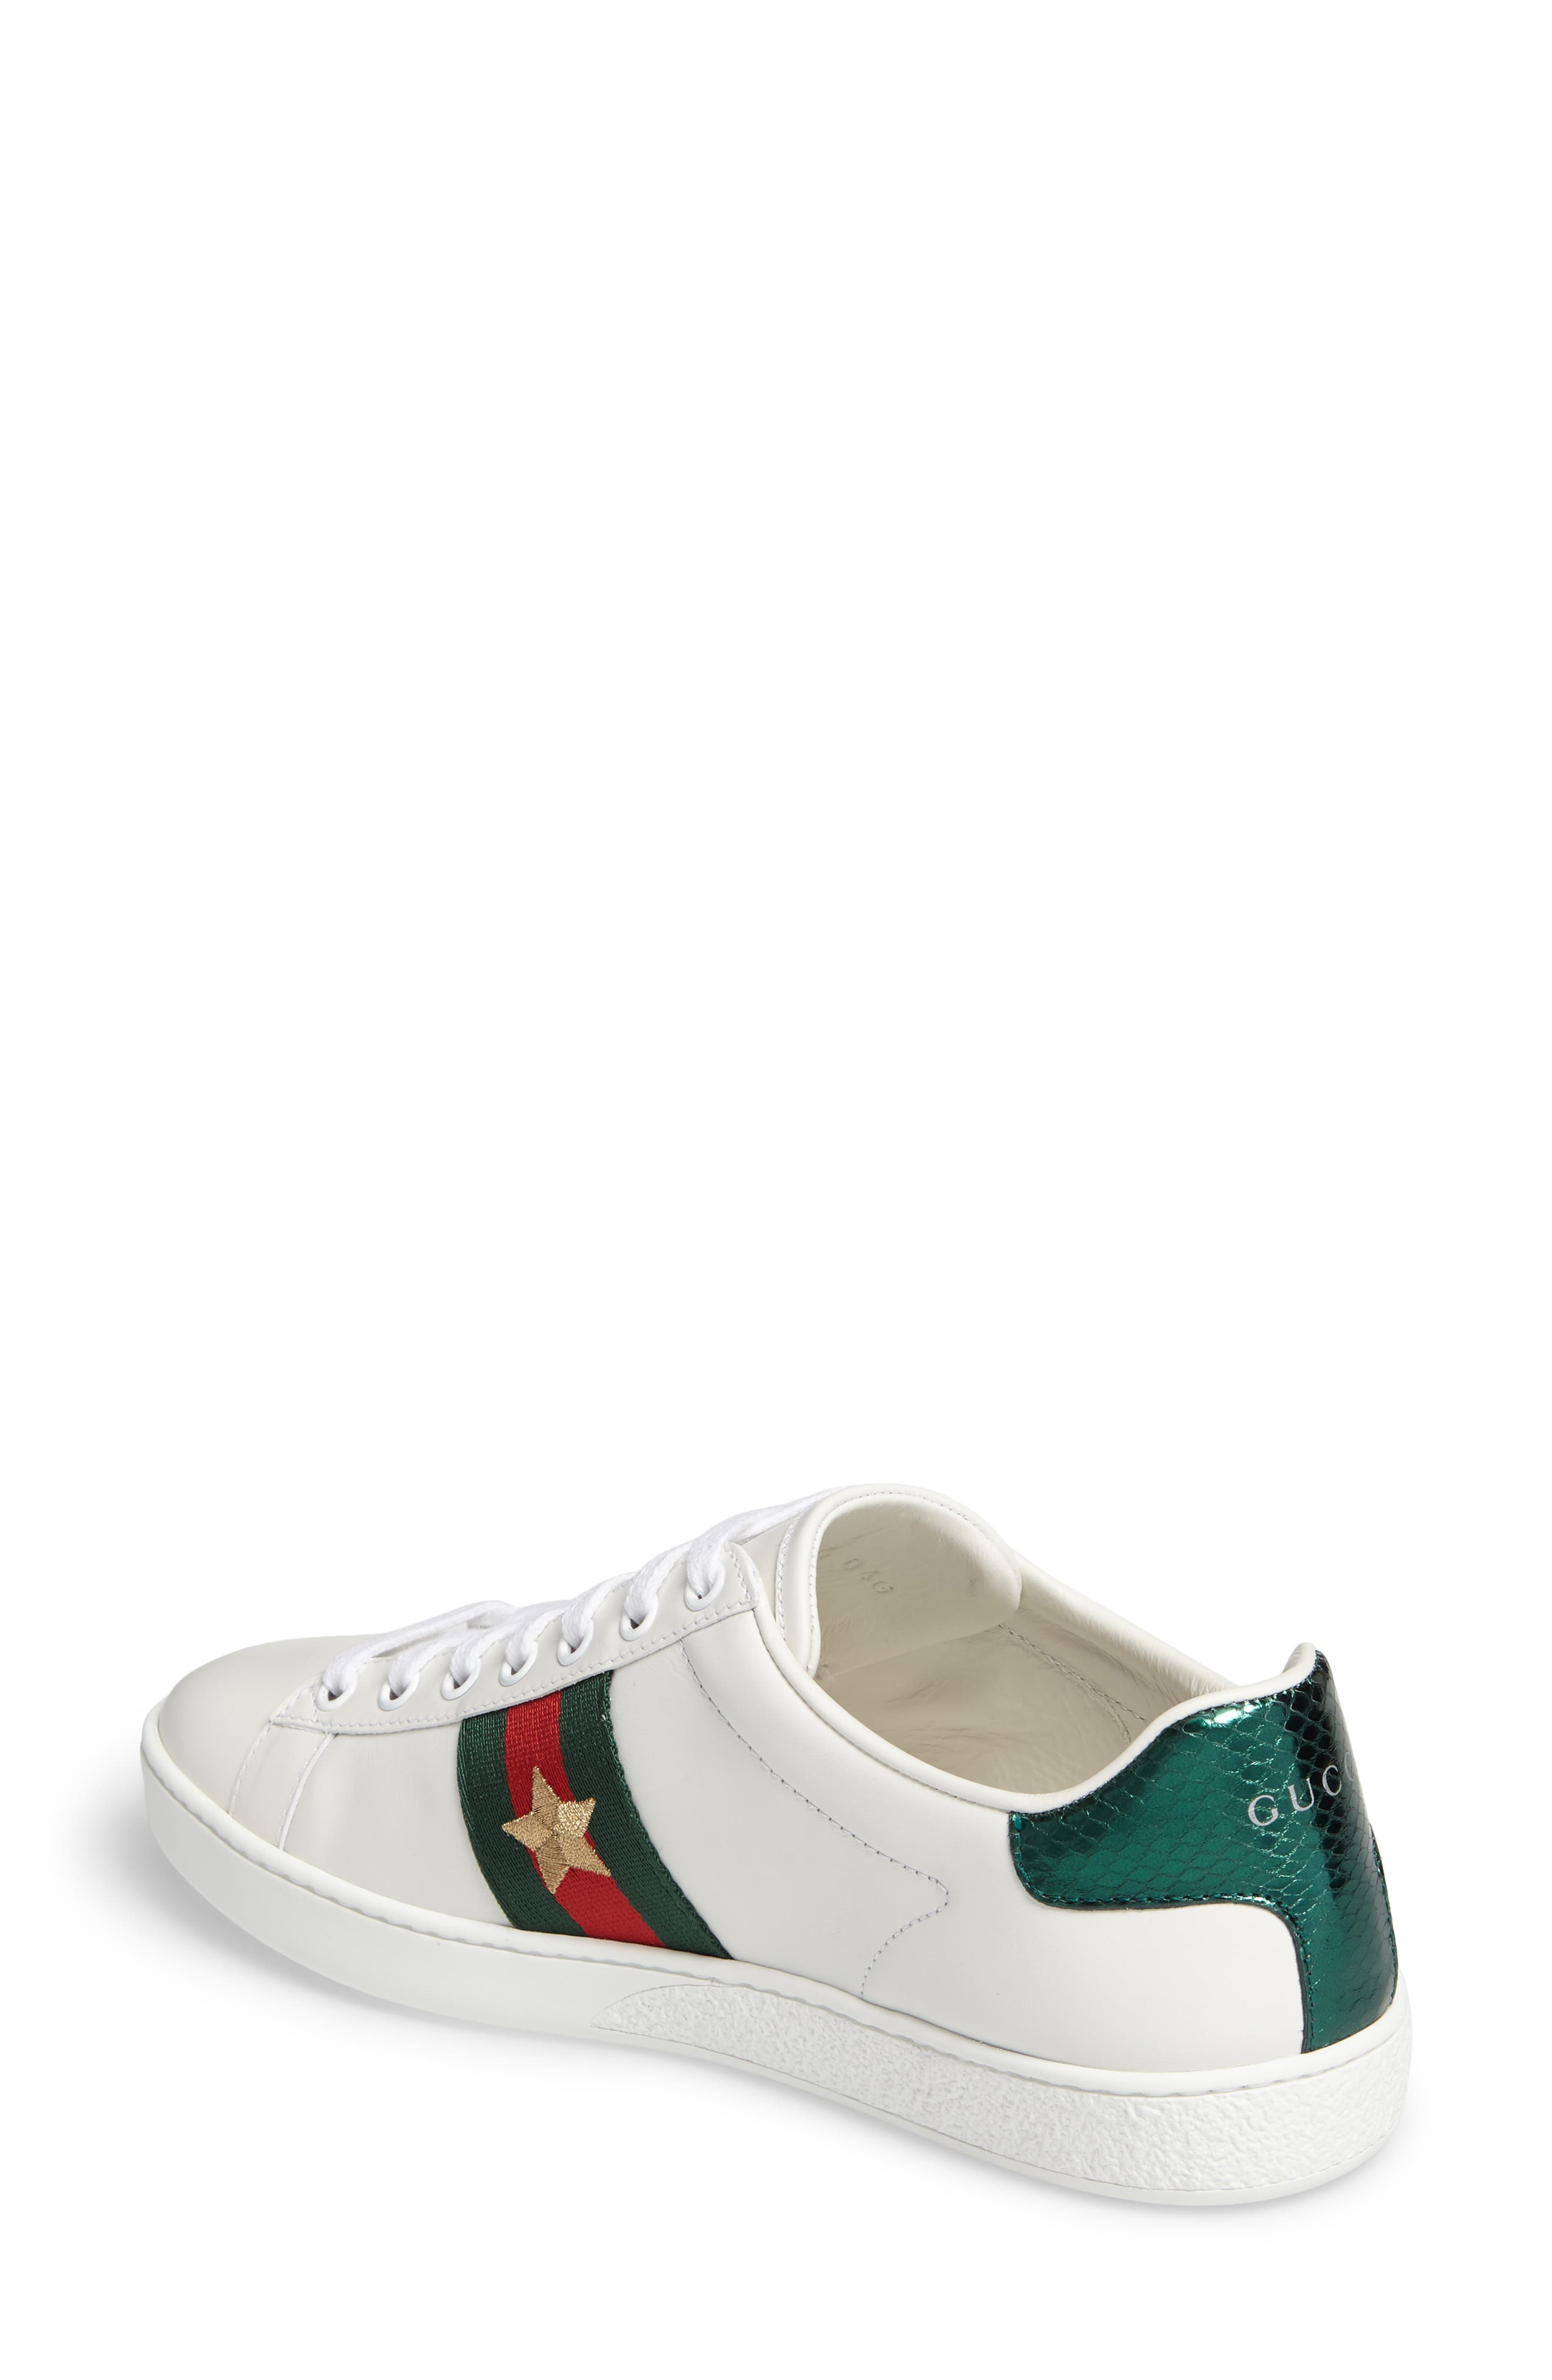 Alternate Image 2  - Gucci New Ace Pineapple Sneaker (Women)